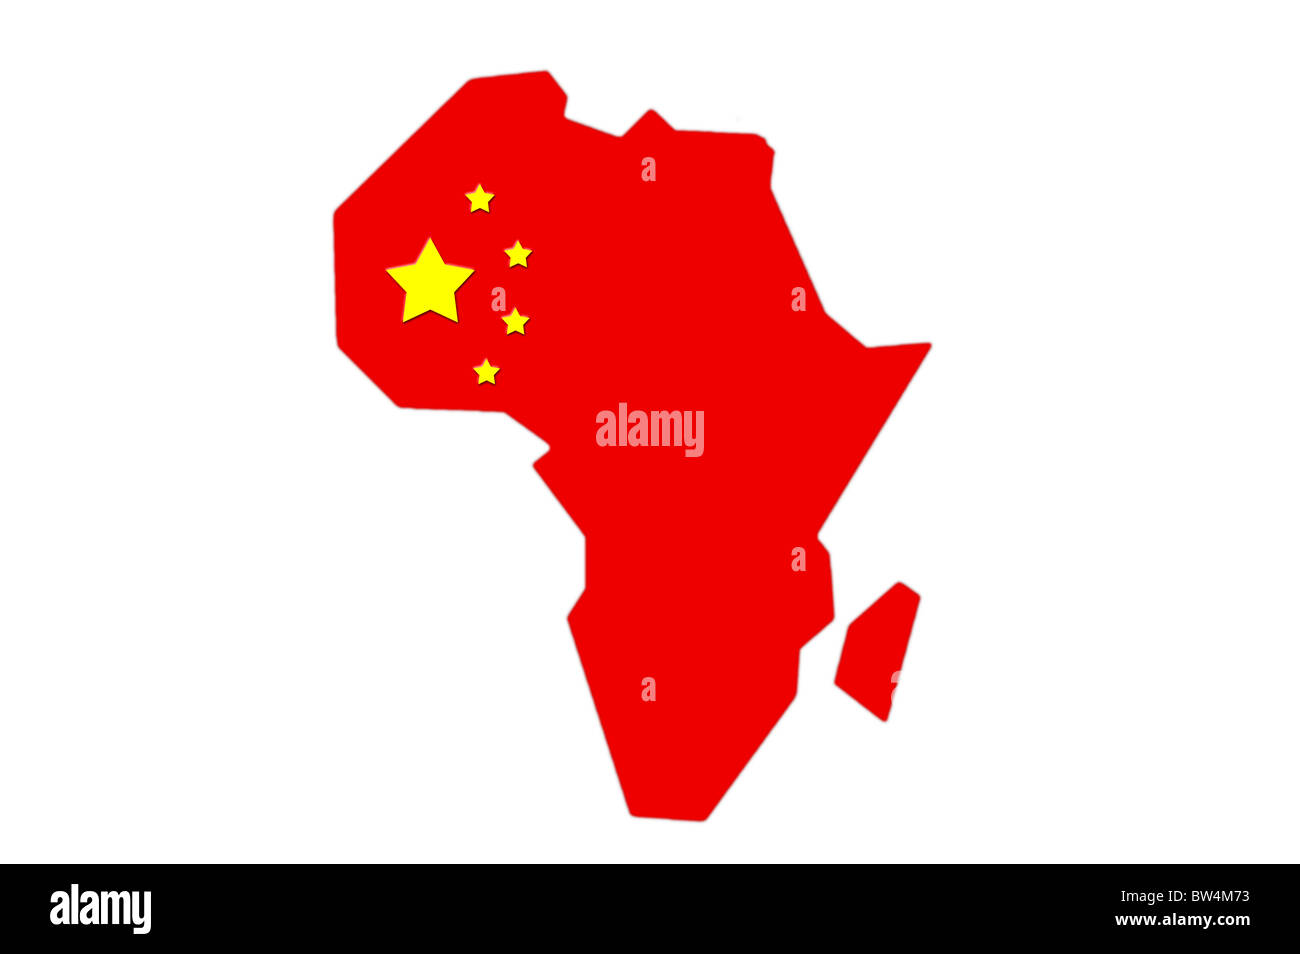 Shape Of Africa Map.Chinese Flag In The Shape Of A Map Of Africa Stock Photo 32680455